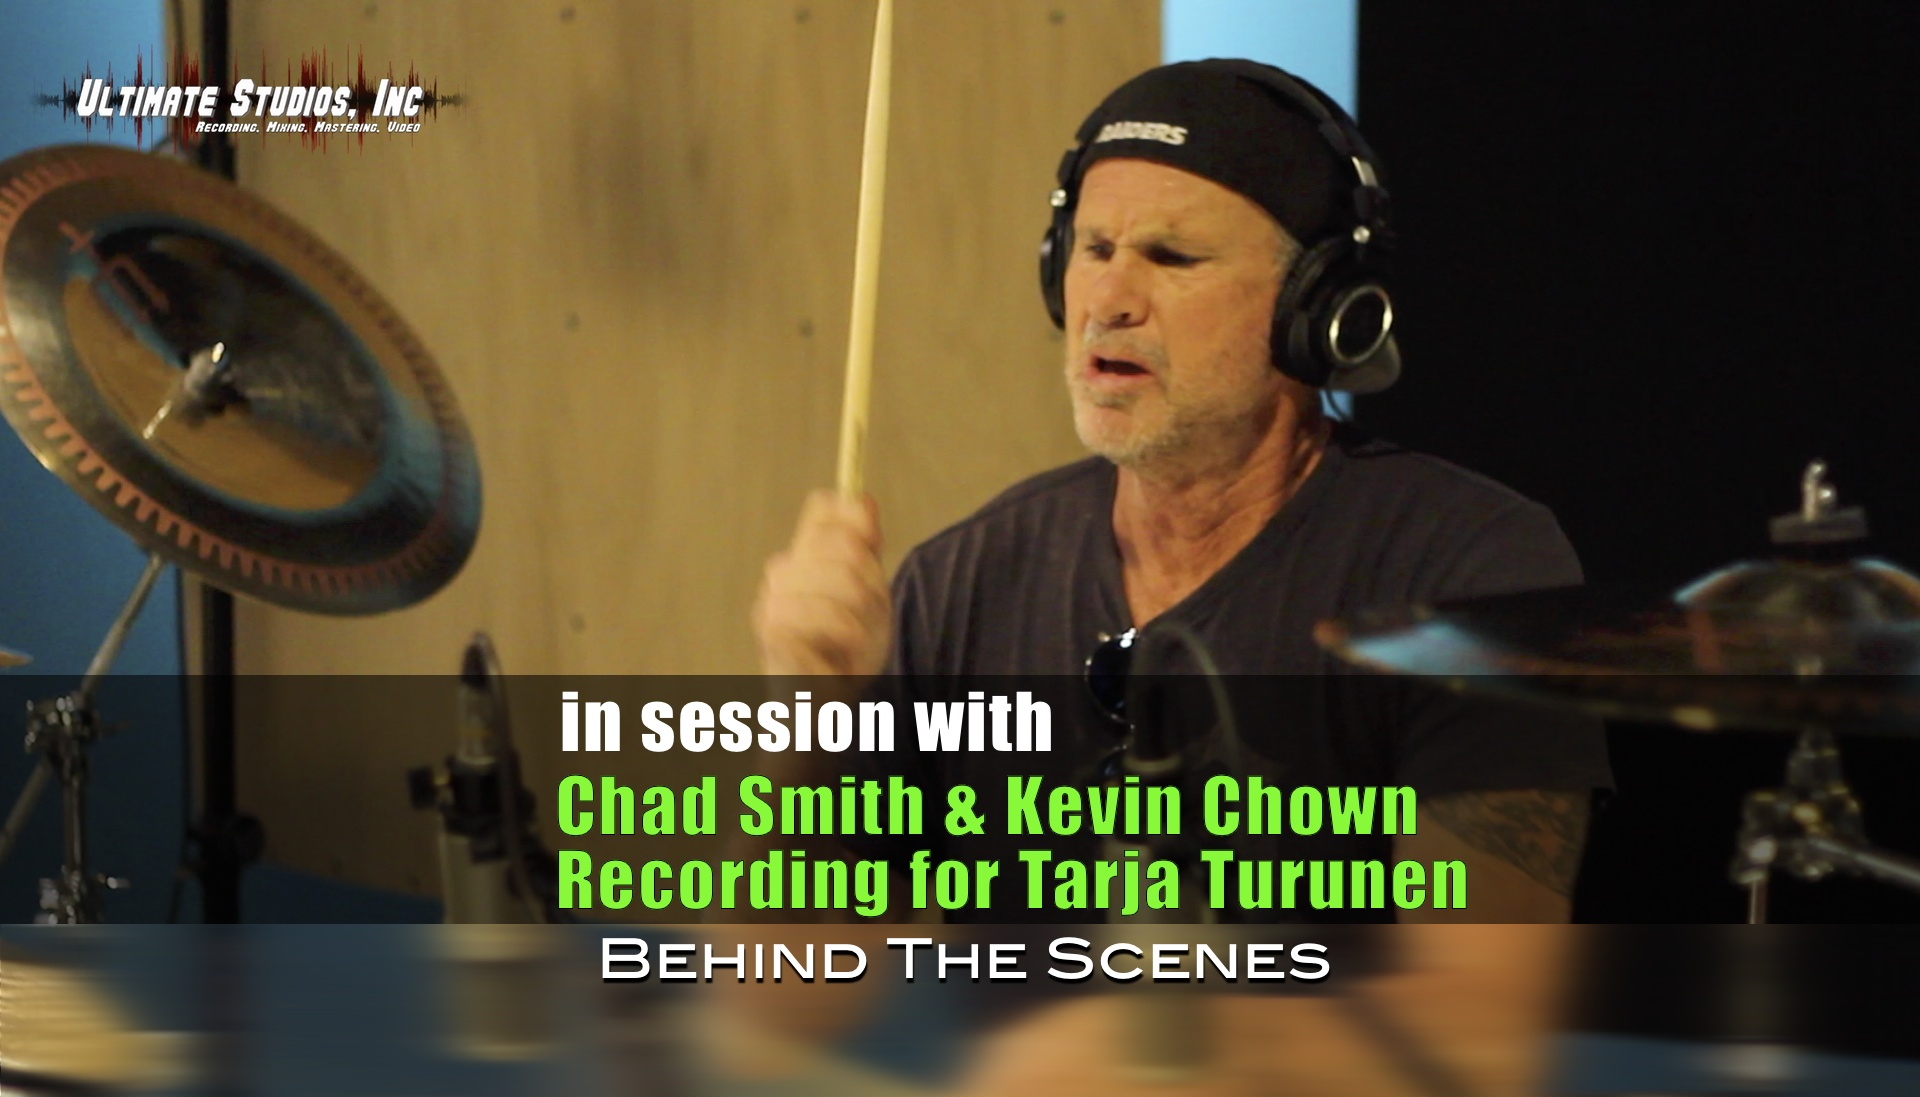 Behind the Scenes with Chad Smith